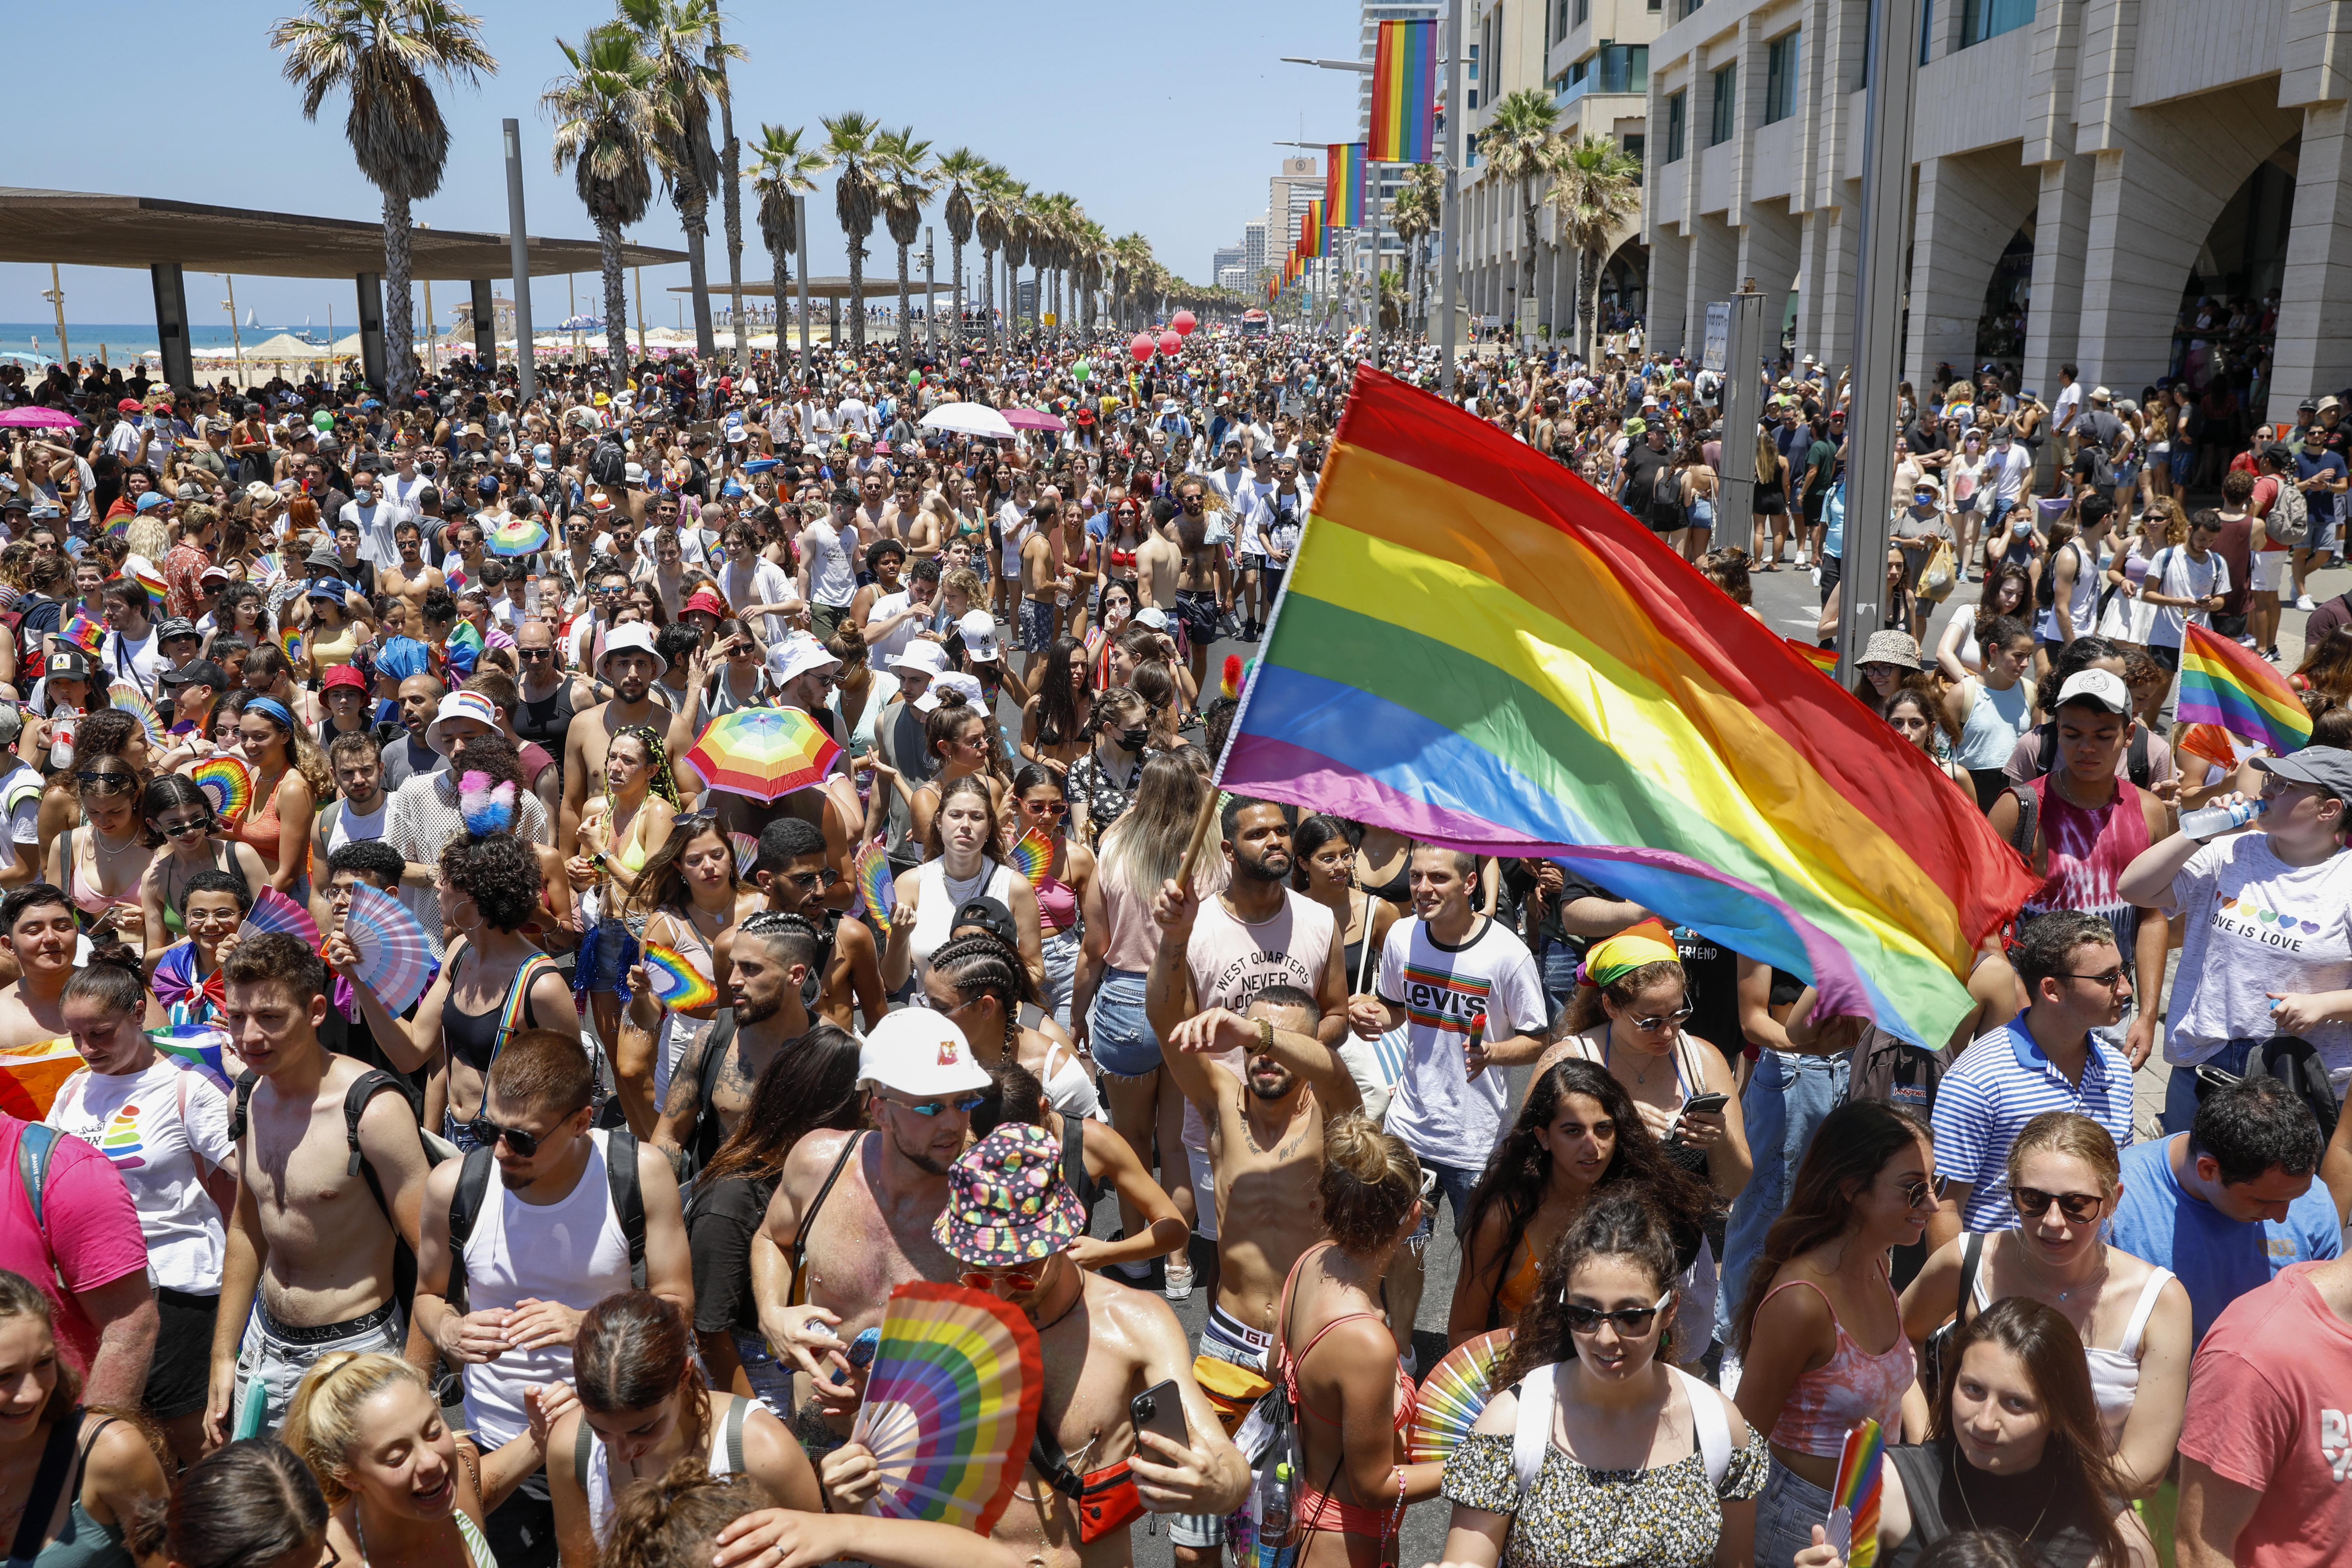 People participate in the annual Pride Parade, in Tel Aviv, Israel on July 11, 2021.